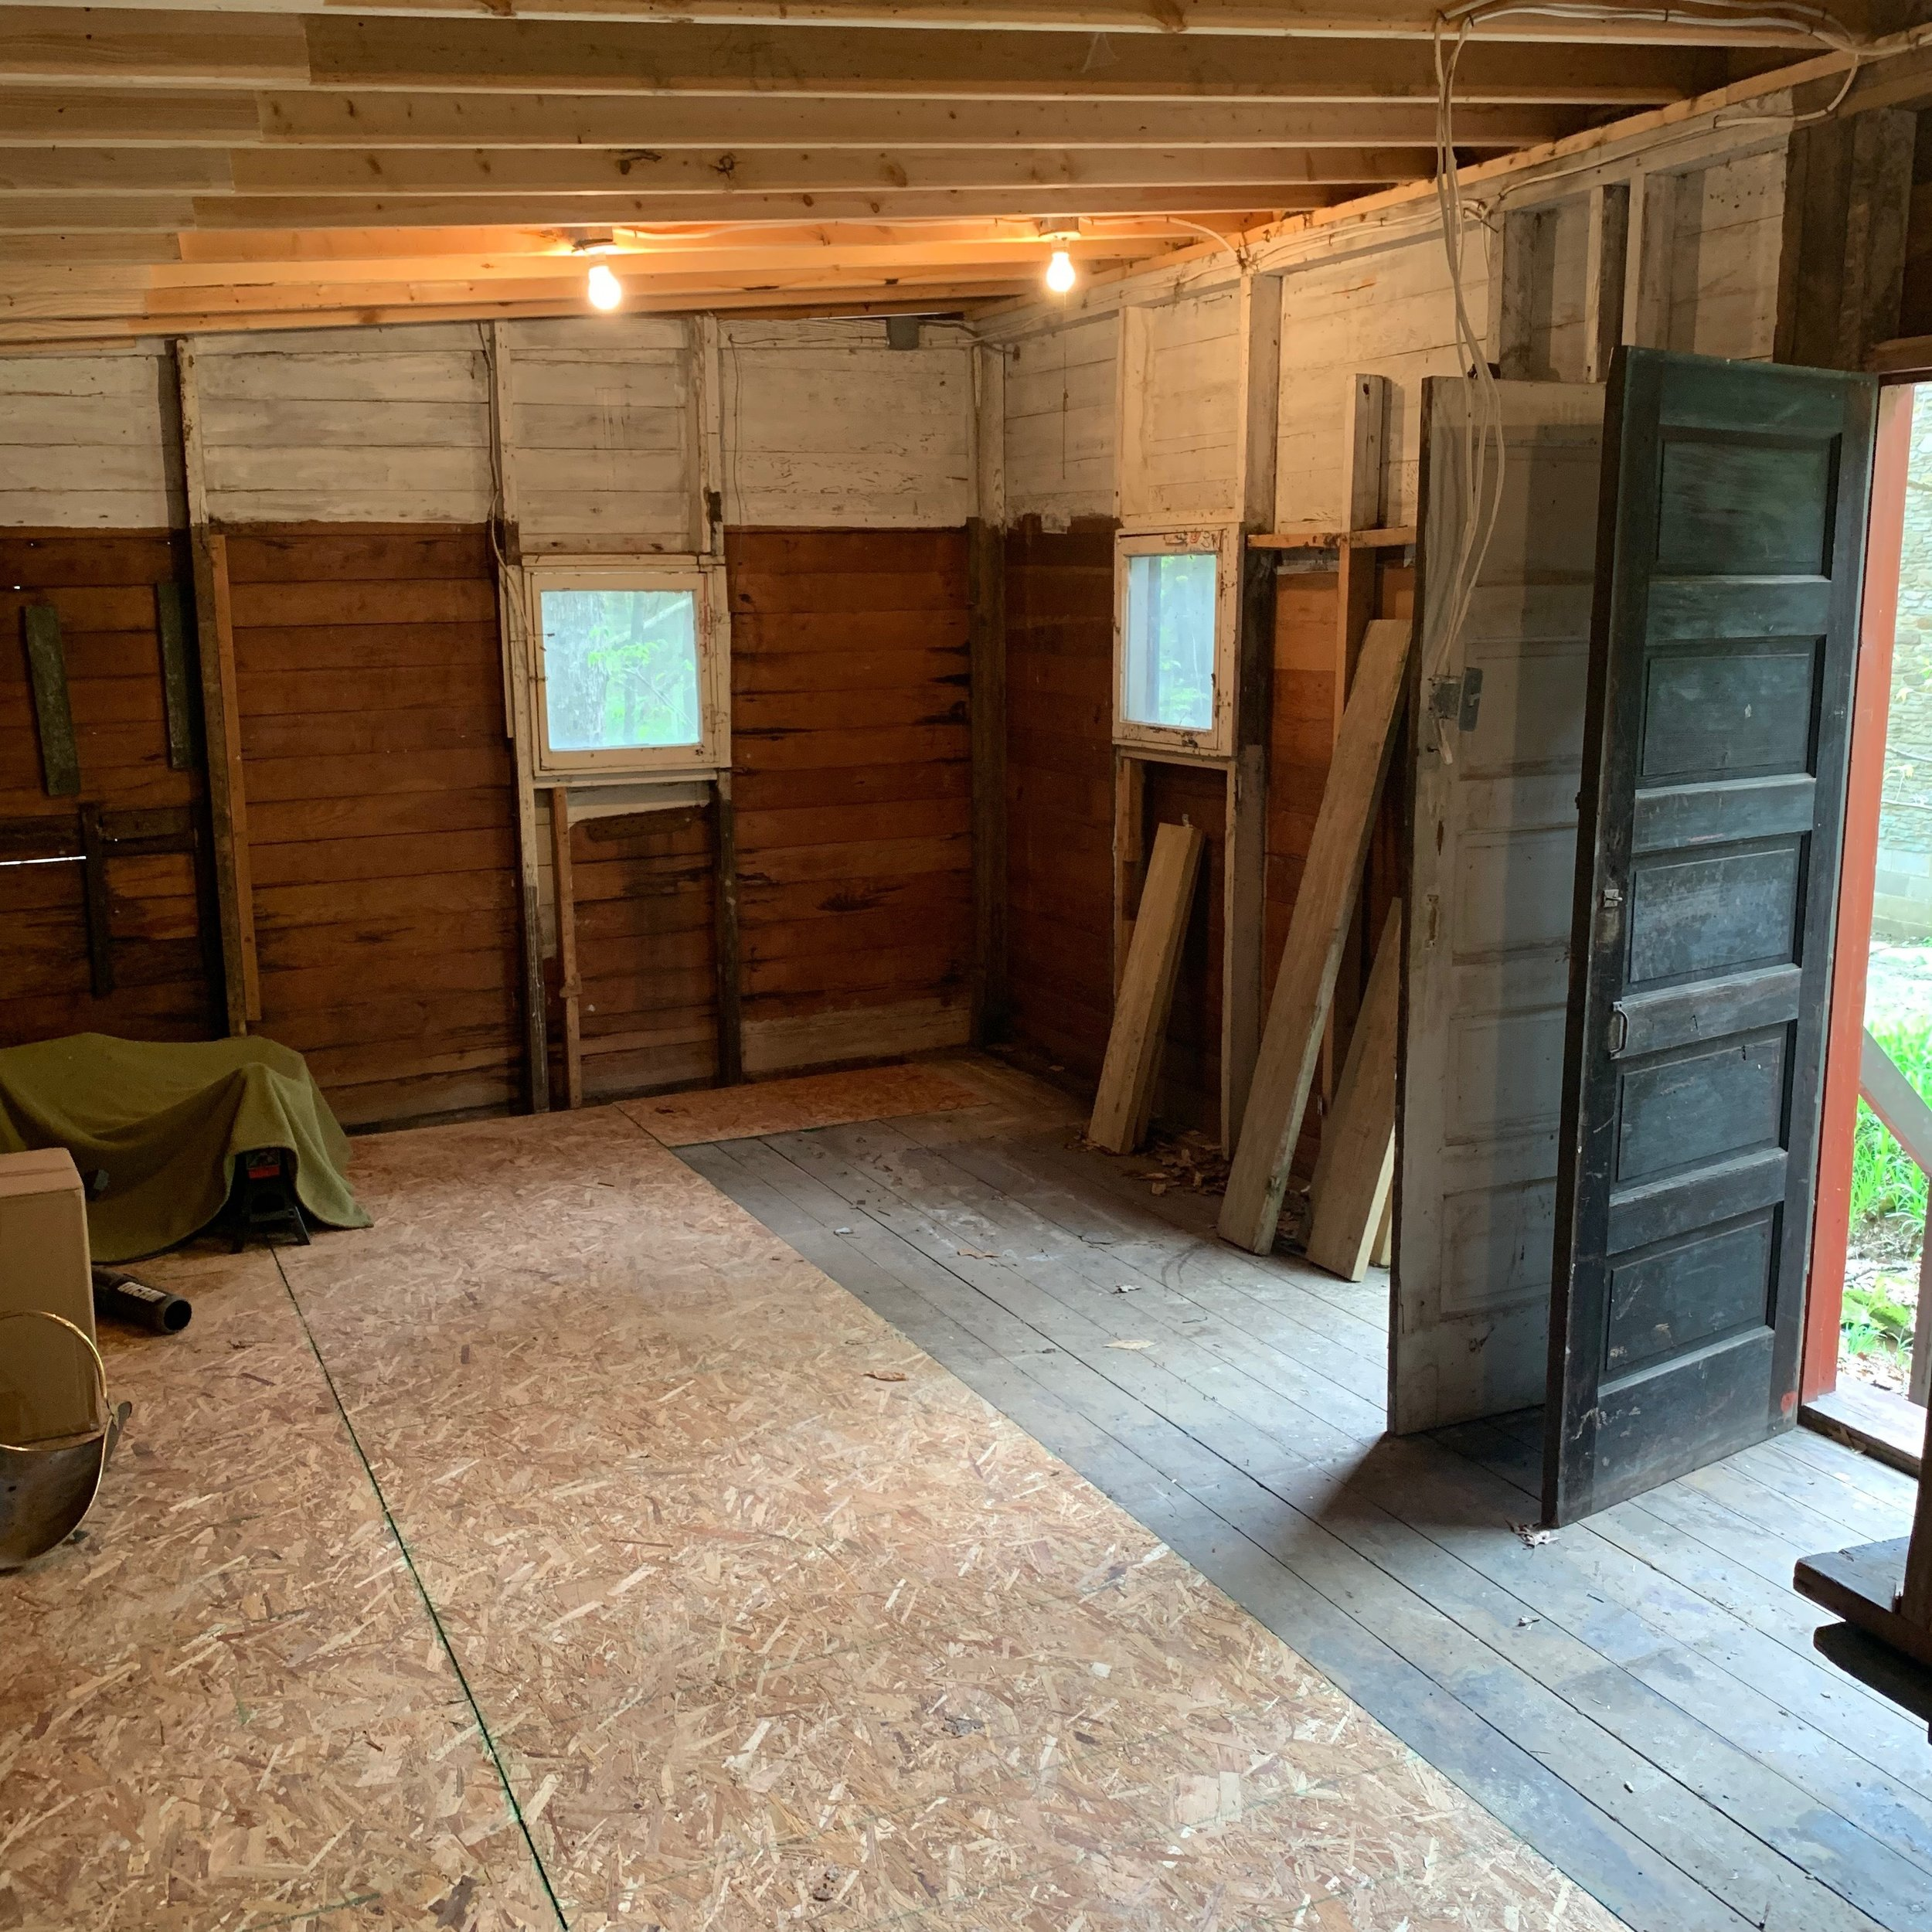 We got the floor repaired and leveled in late April! We will be using this as temporary storage while we continue renovations in the cabin/build a shed.